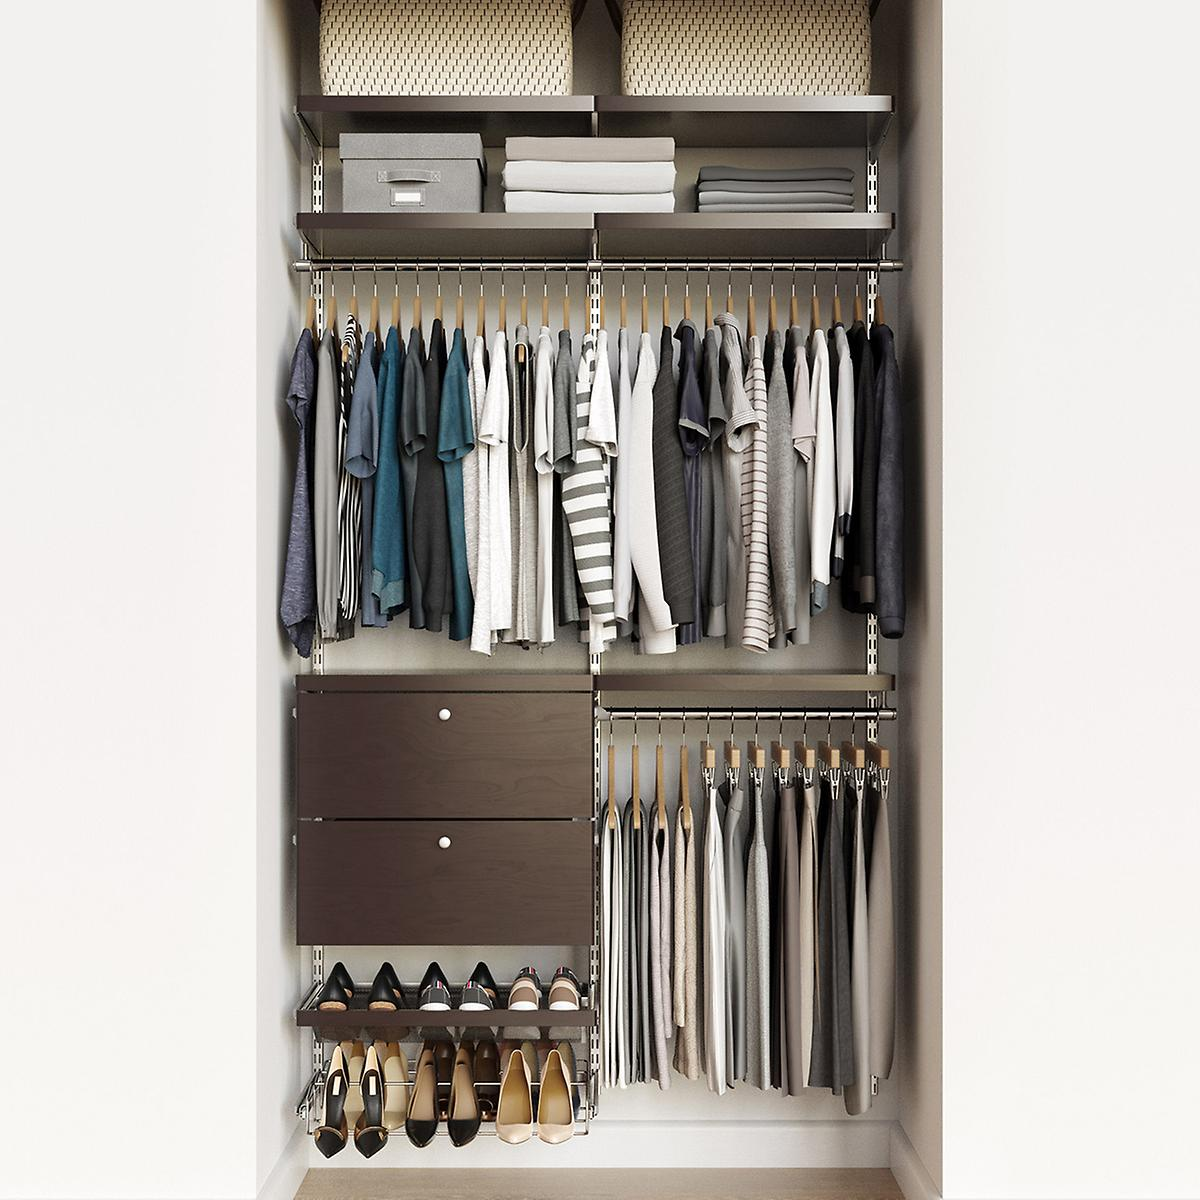 Elfa Decor 4' Platinum & Walnut Reach-In Drawer Front Closet